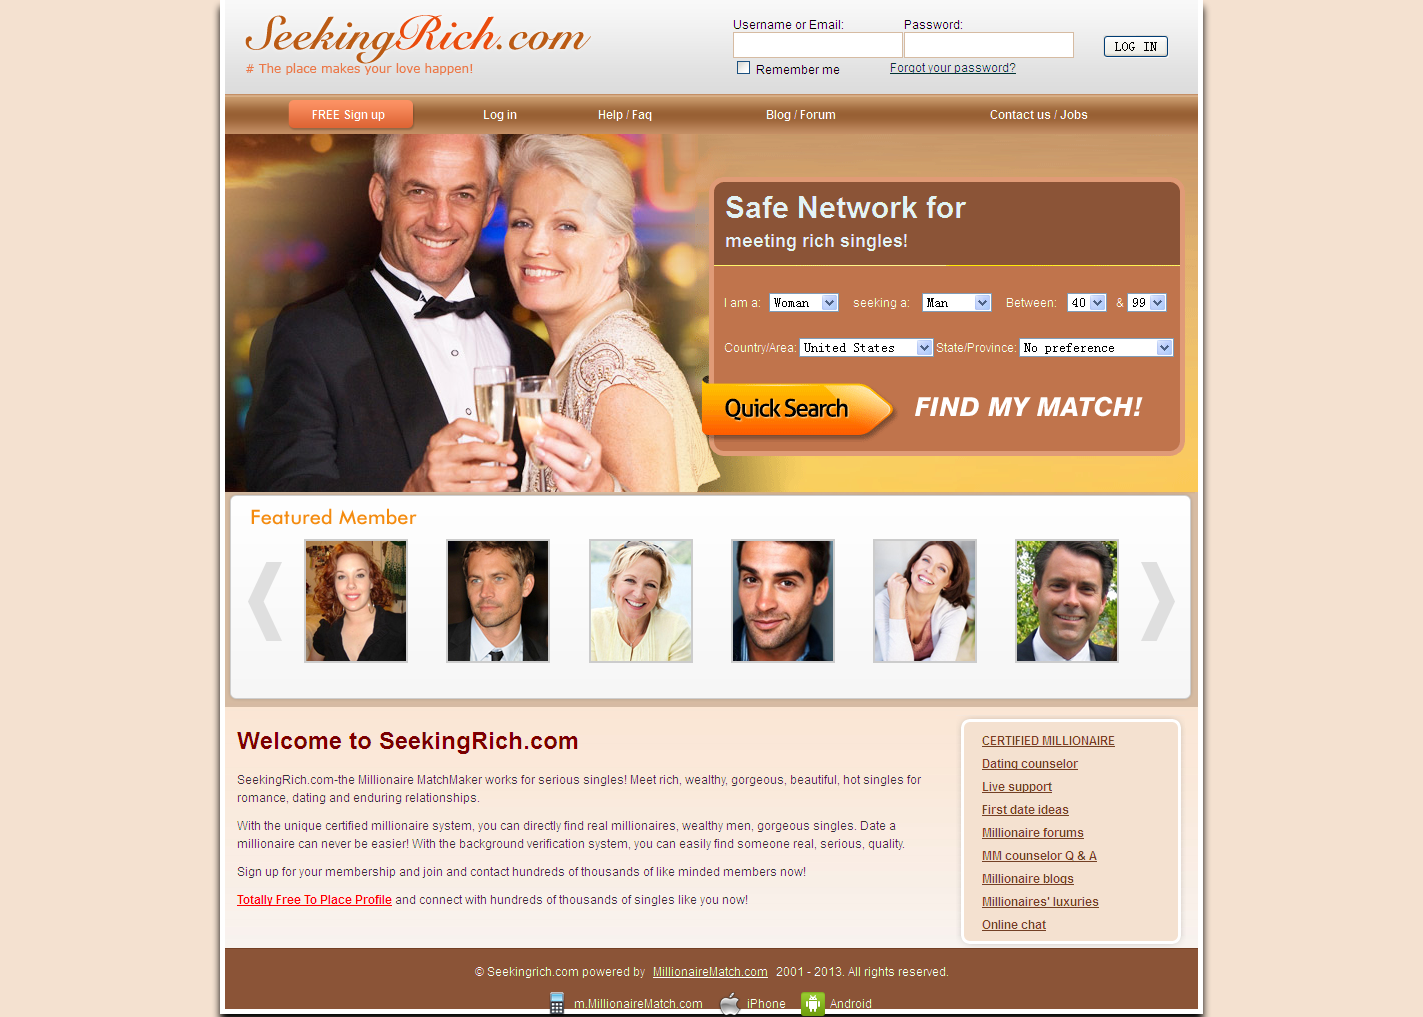 schaumburg singles dating site Luvfreecom is a 100% free online dating and personal ads site there are a lot of schaumburg singles searching romance, friendship, fun and more dates join our schaumburg dating site, view.